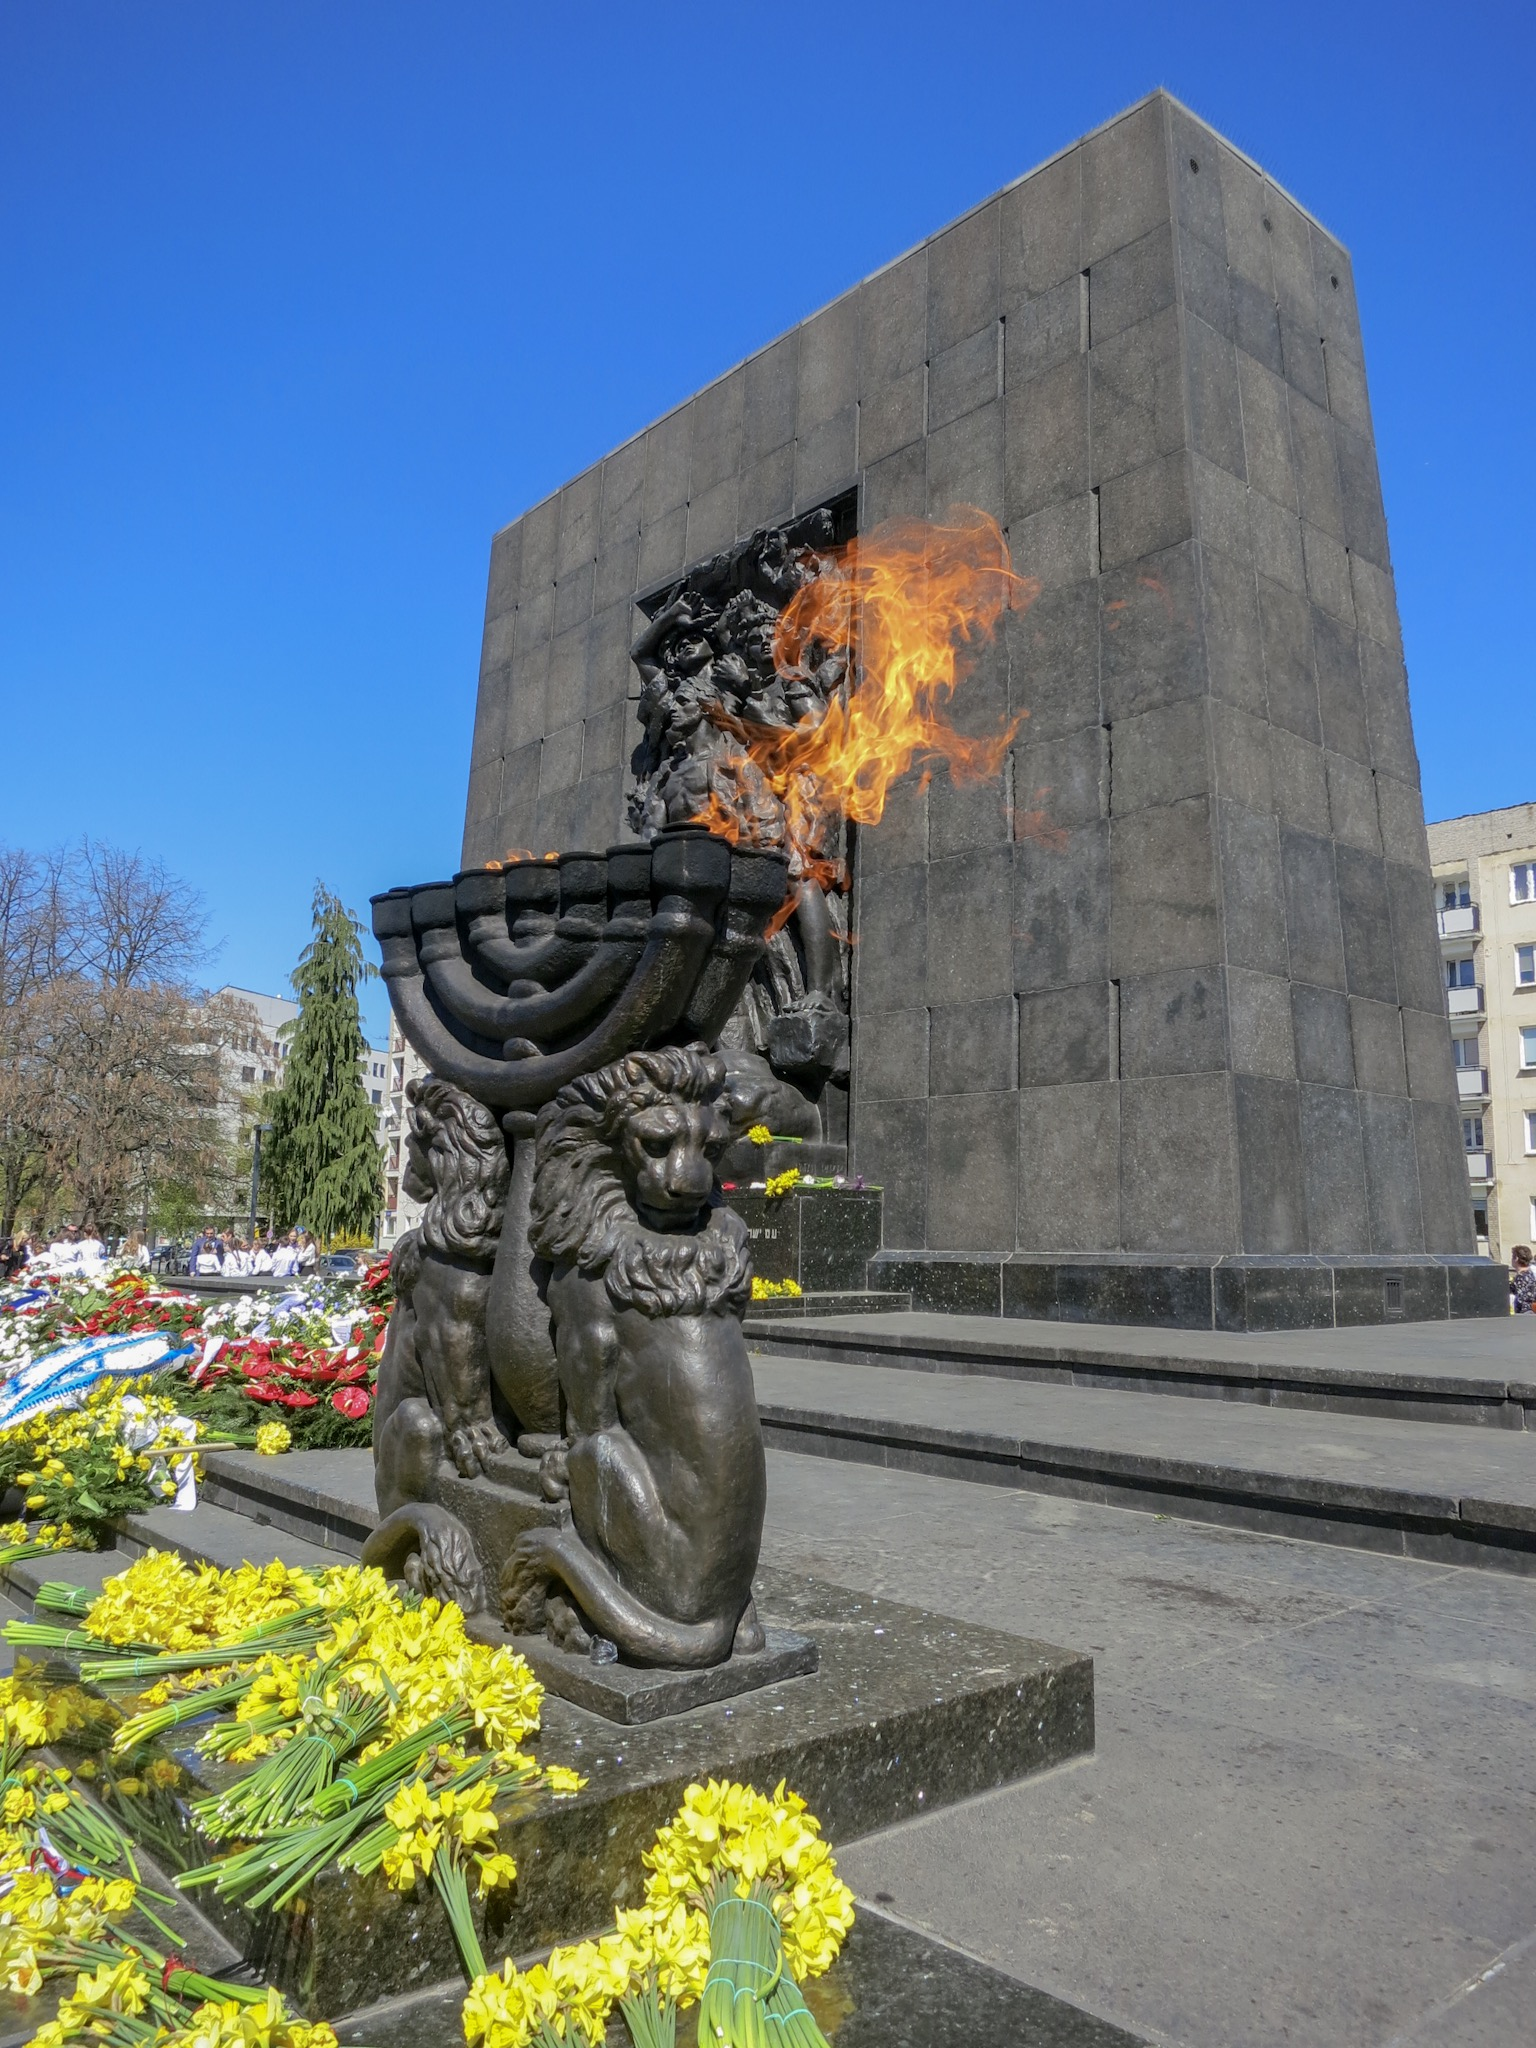 The menorah is lit on the Heroes of the Ghetto Monument in commemoration of the 76th Anniversary of the Warsaw Ghetto Uprising